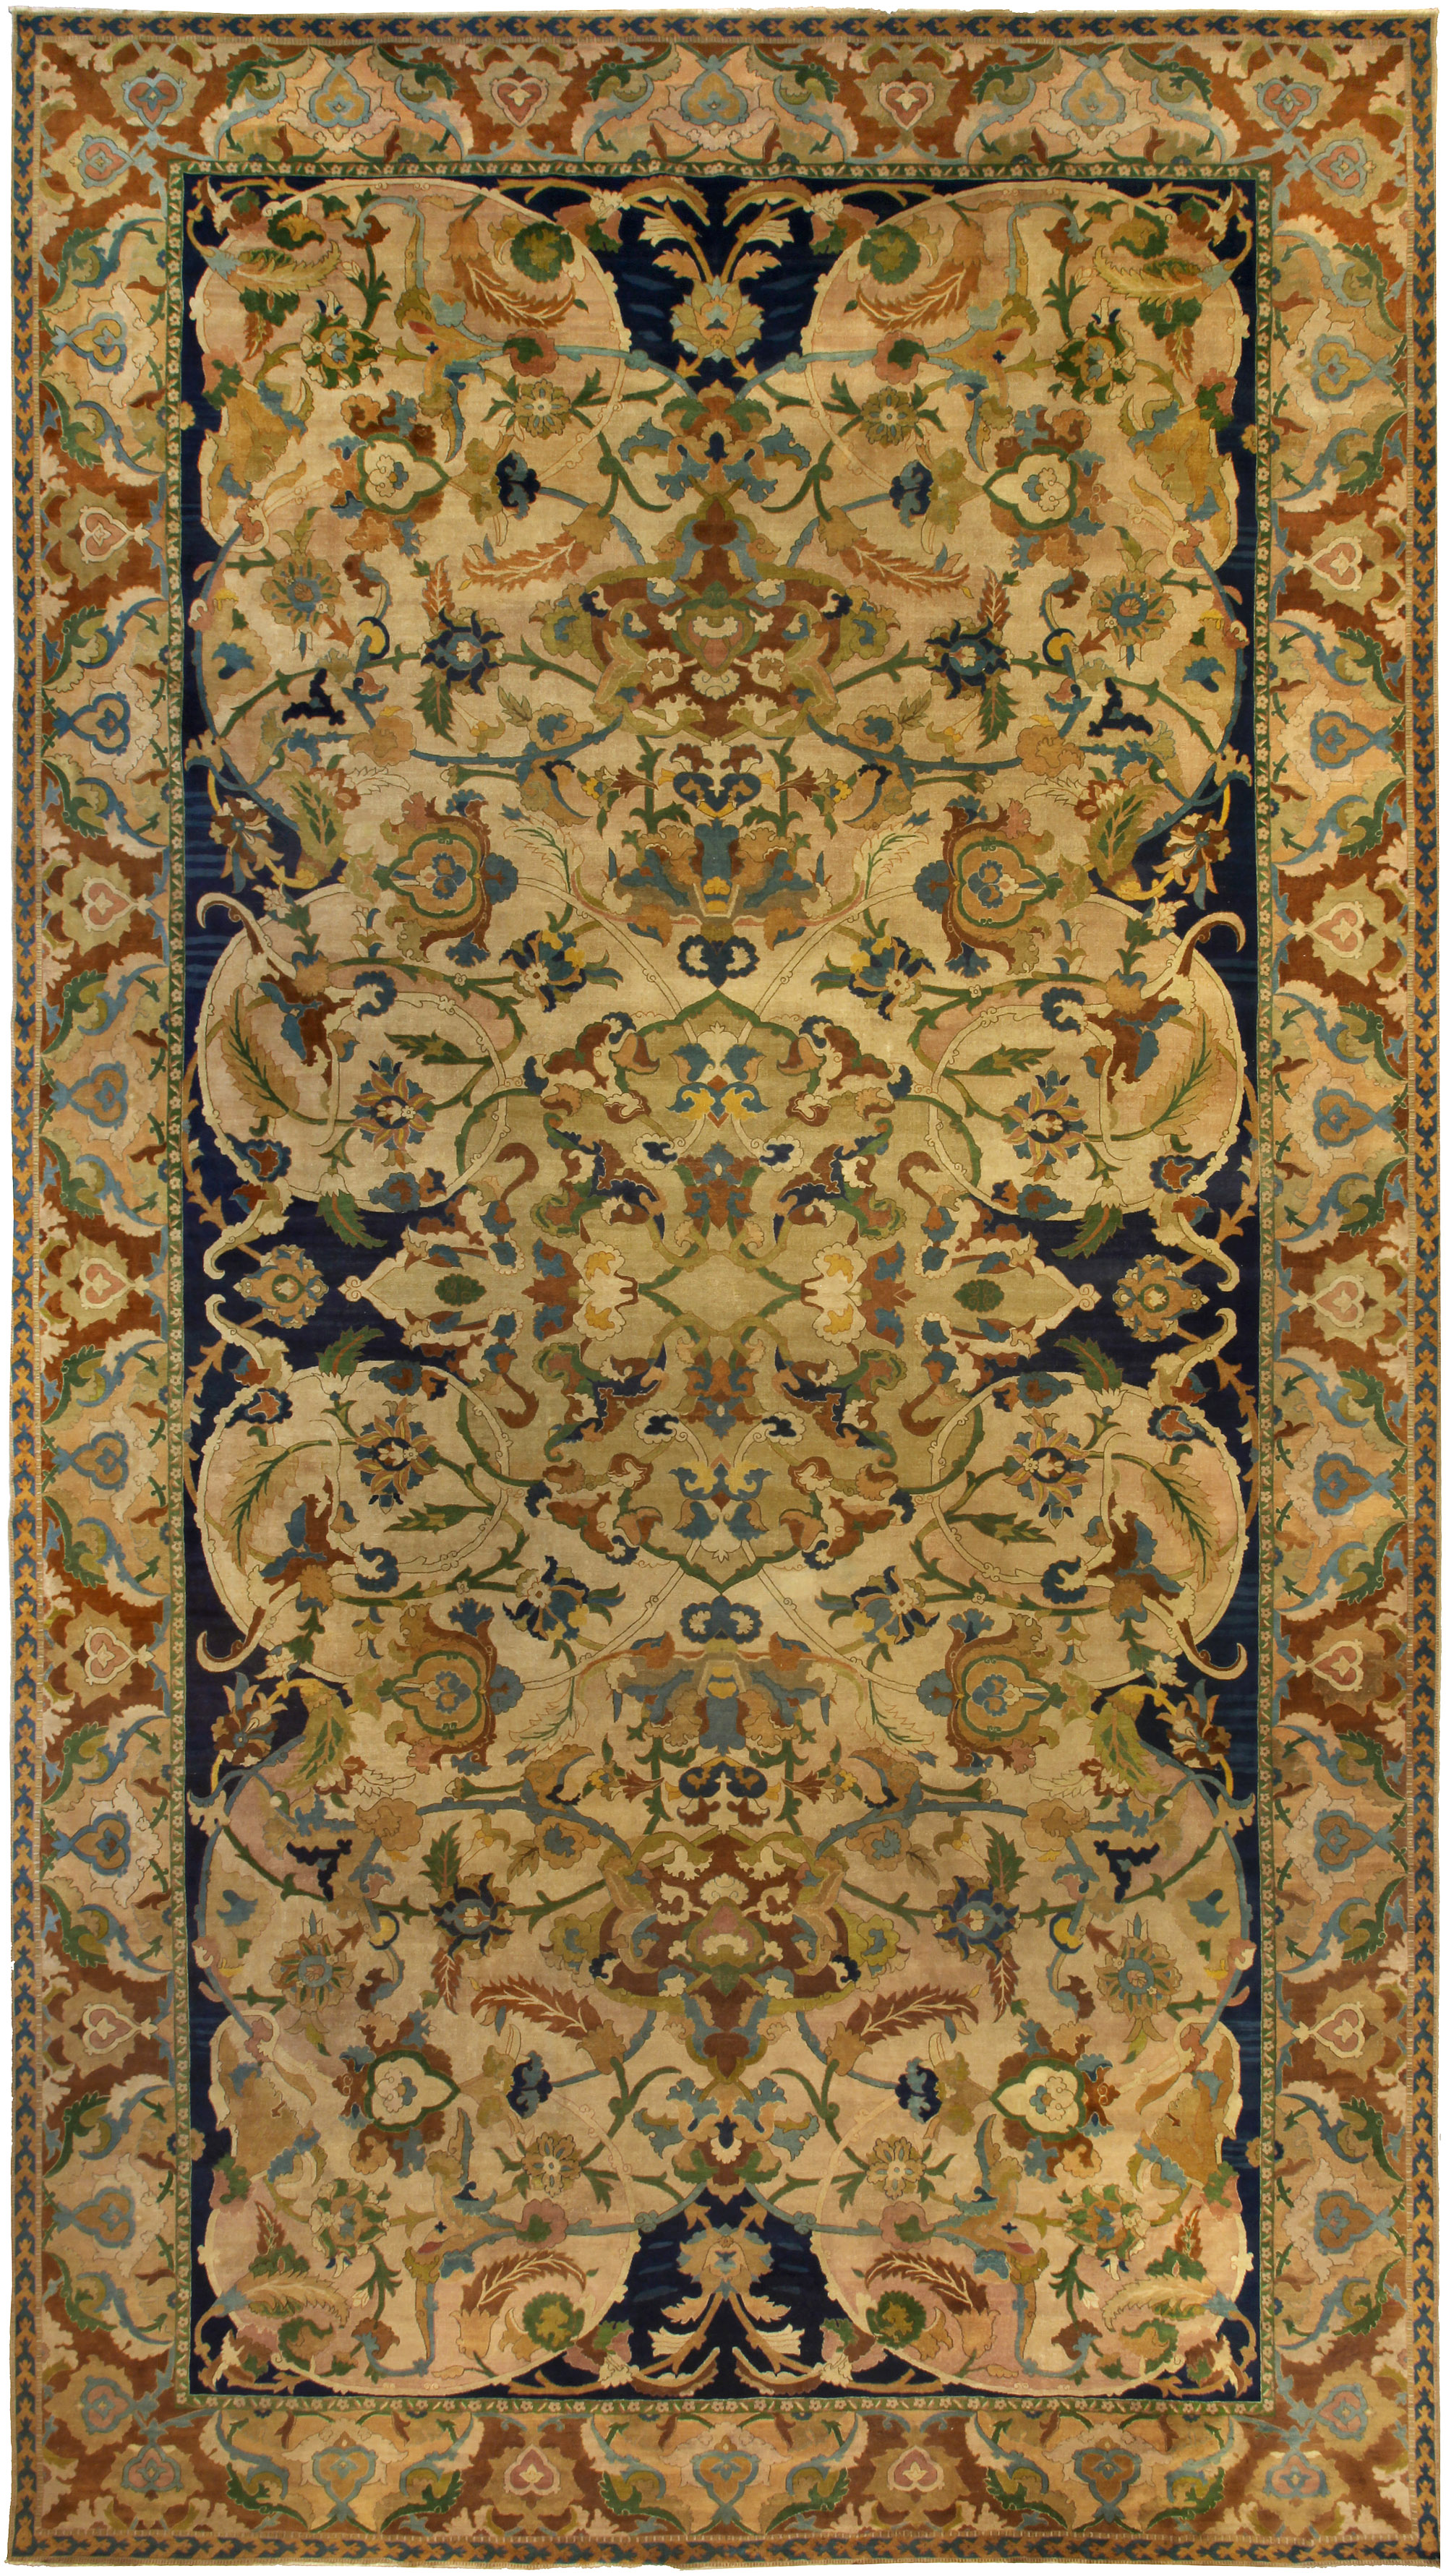 Antique Indian Rug Bb5257 By Dlb